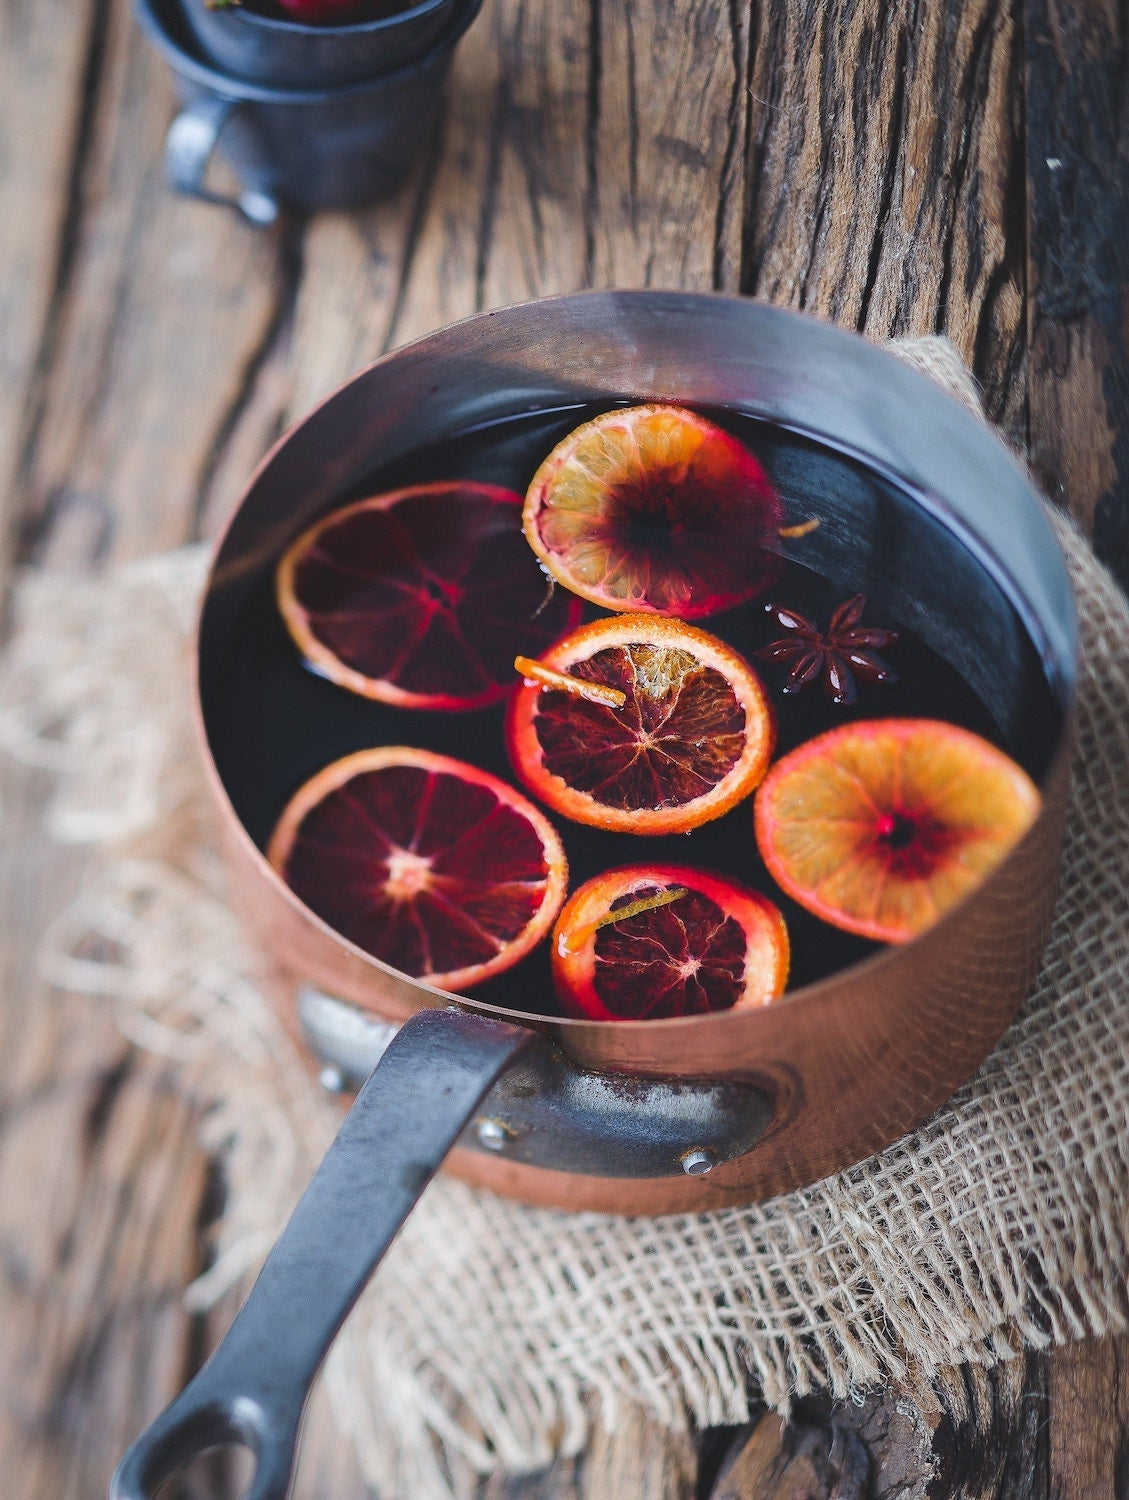 Mulled wine perfect for fall at the campsite.